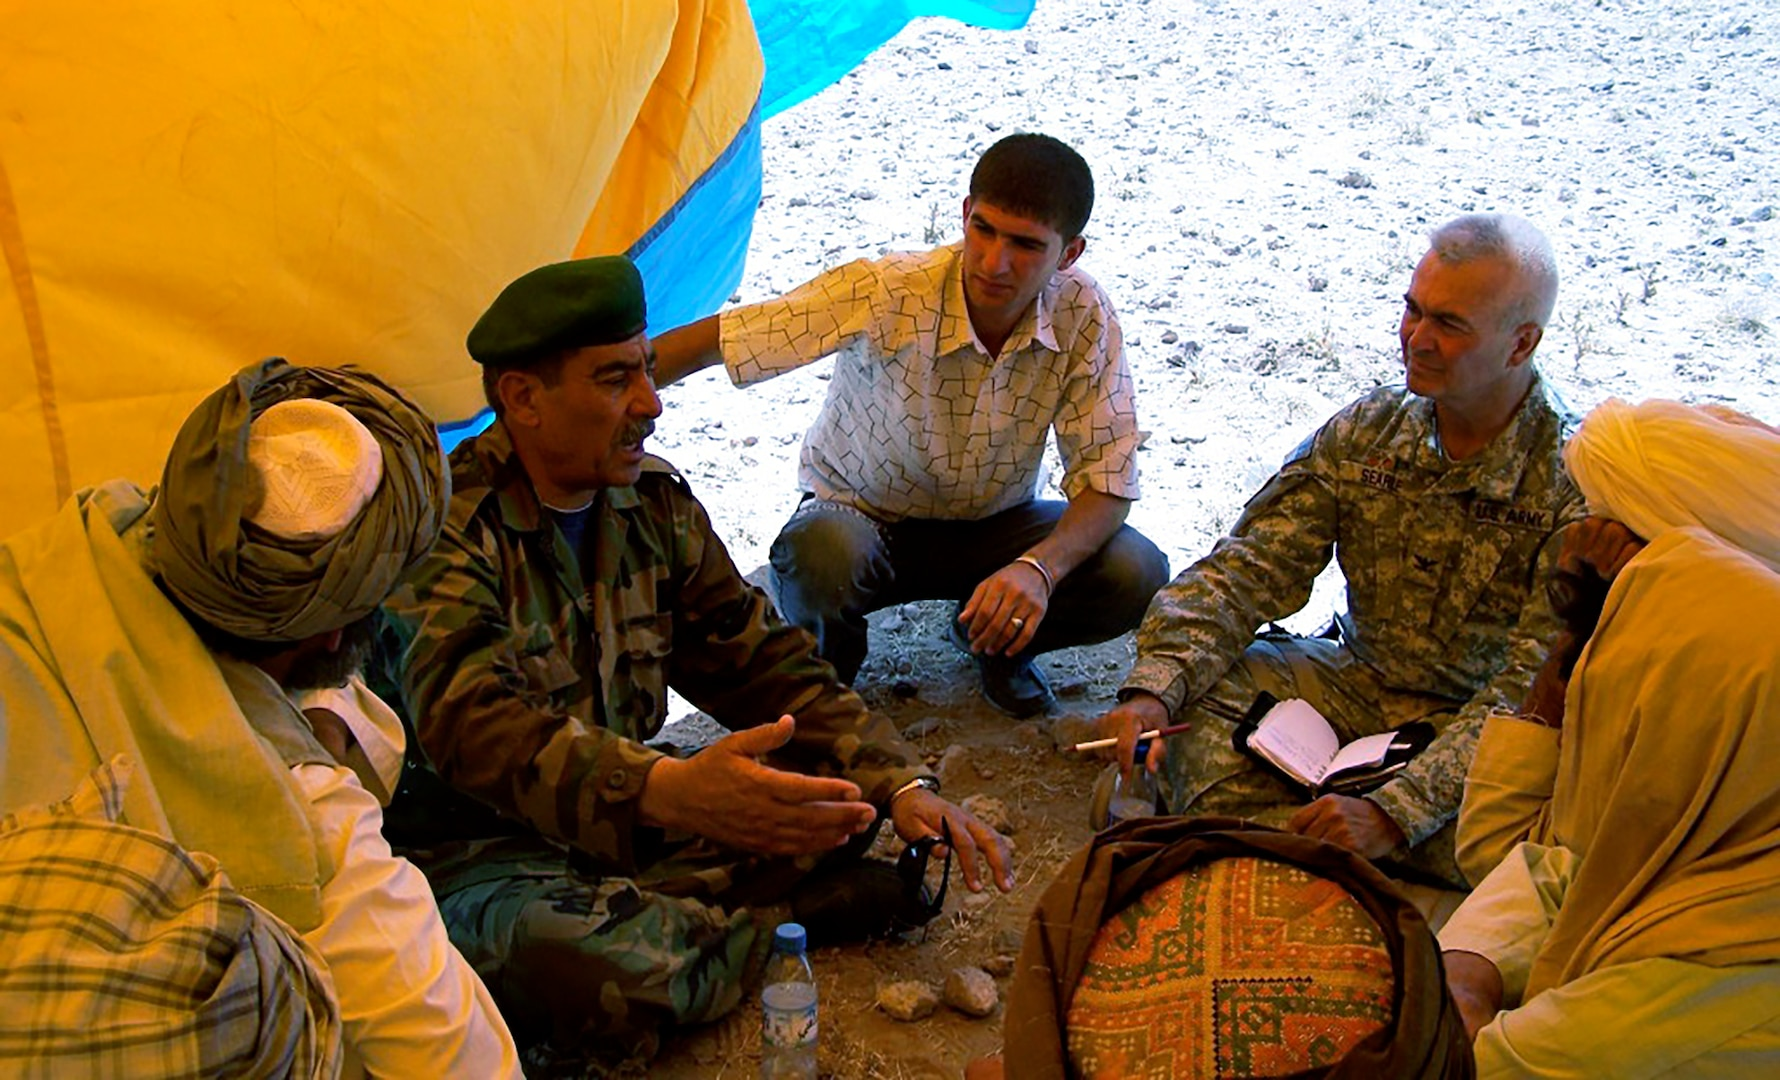 While serving as an interpreter for the U.S. military, Fahim Masoud (center), went on several missions with senior U.S. Army officers for meetings with local Afghanistan officials.